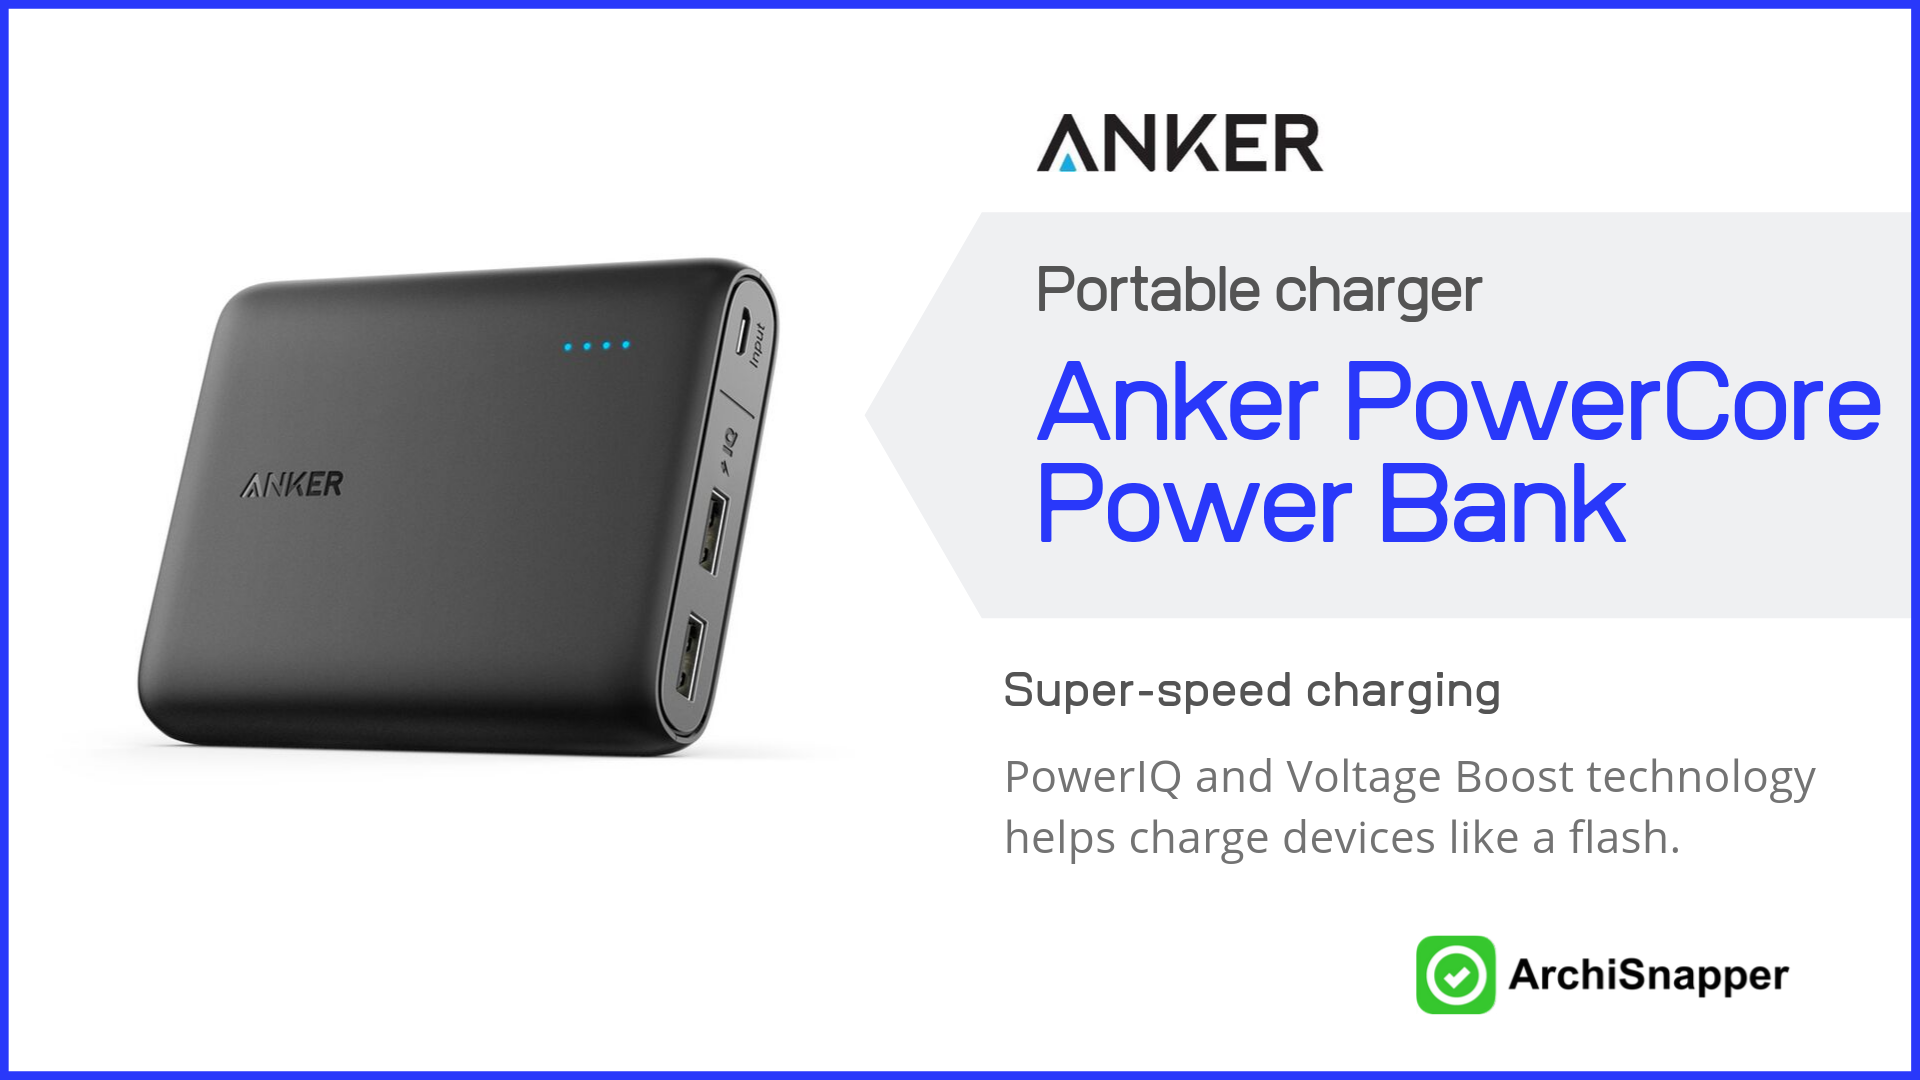 Anker PowerCore 13000mAh Power Bank | Top Tech for Architects Presented by Archisnapper.